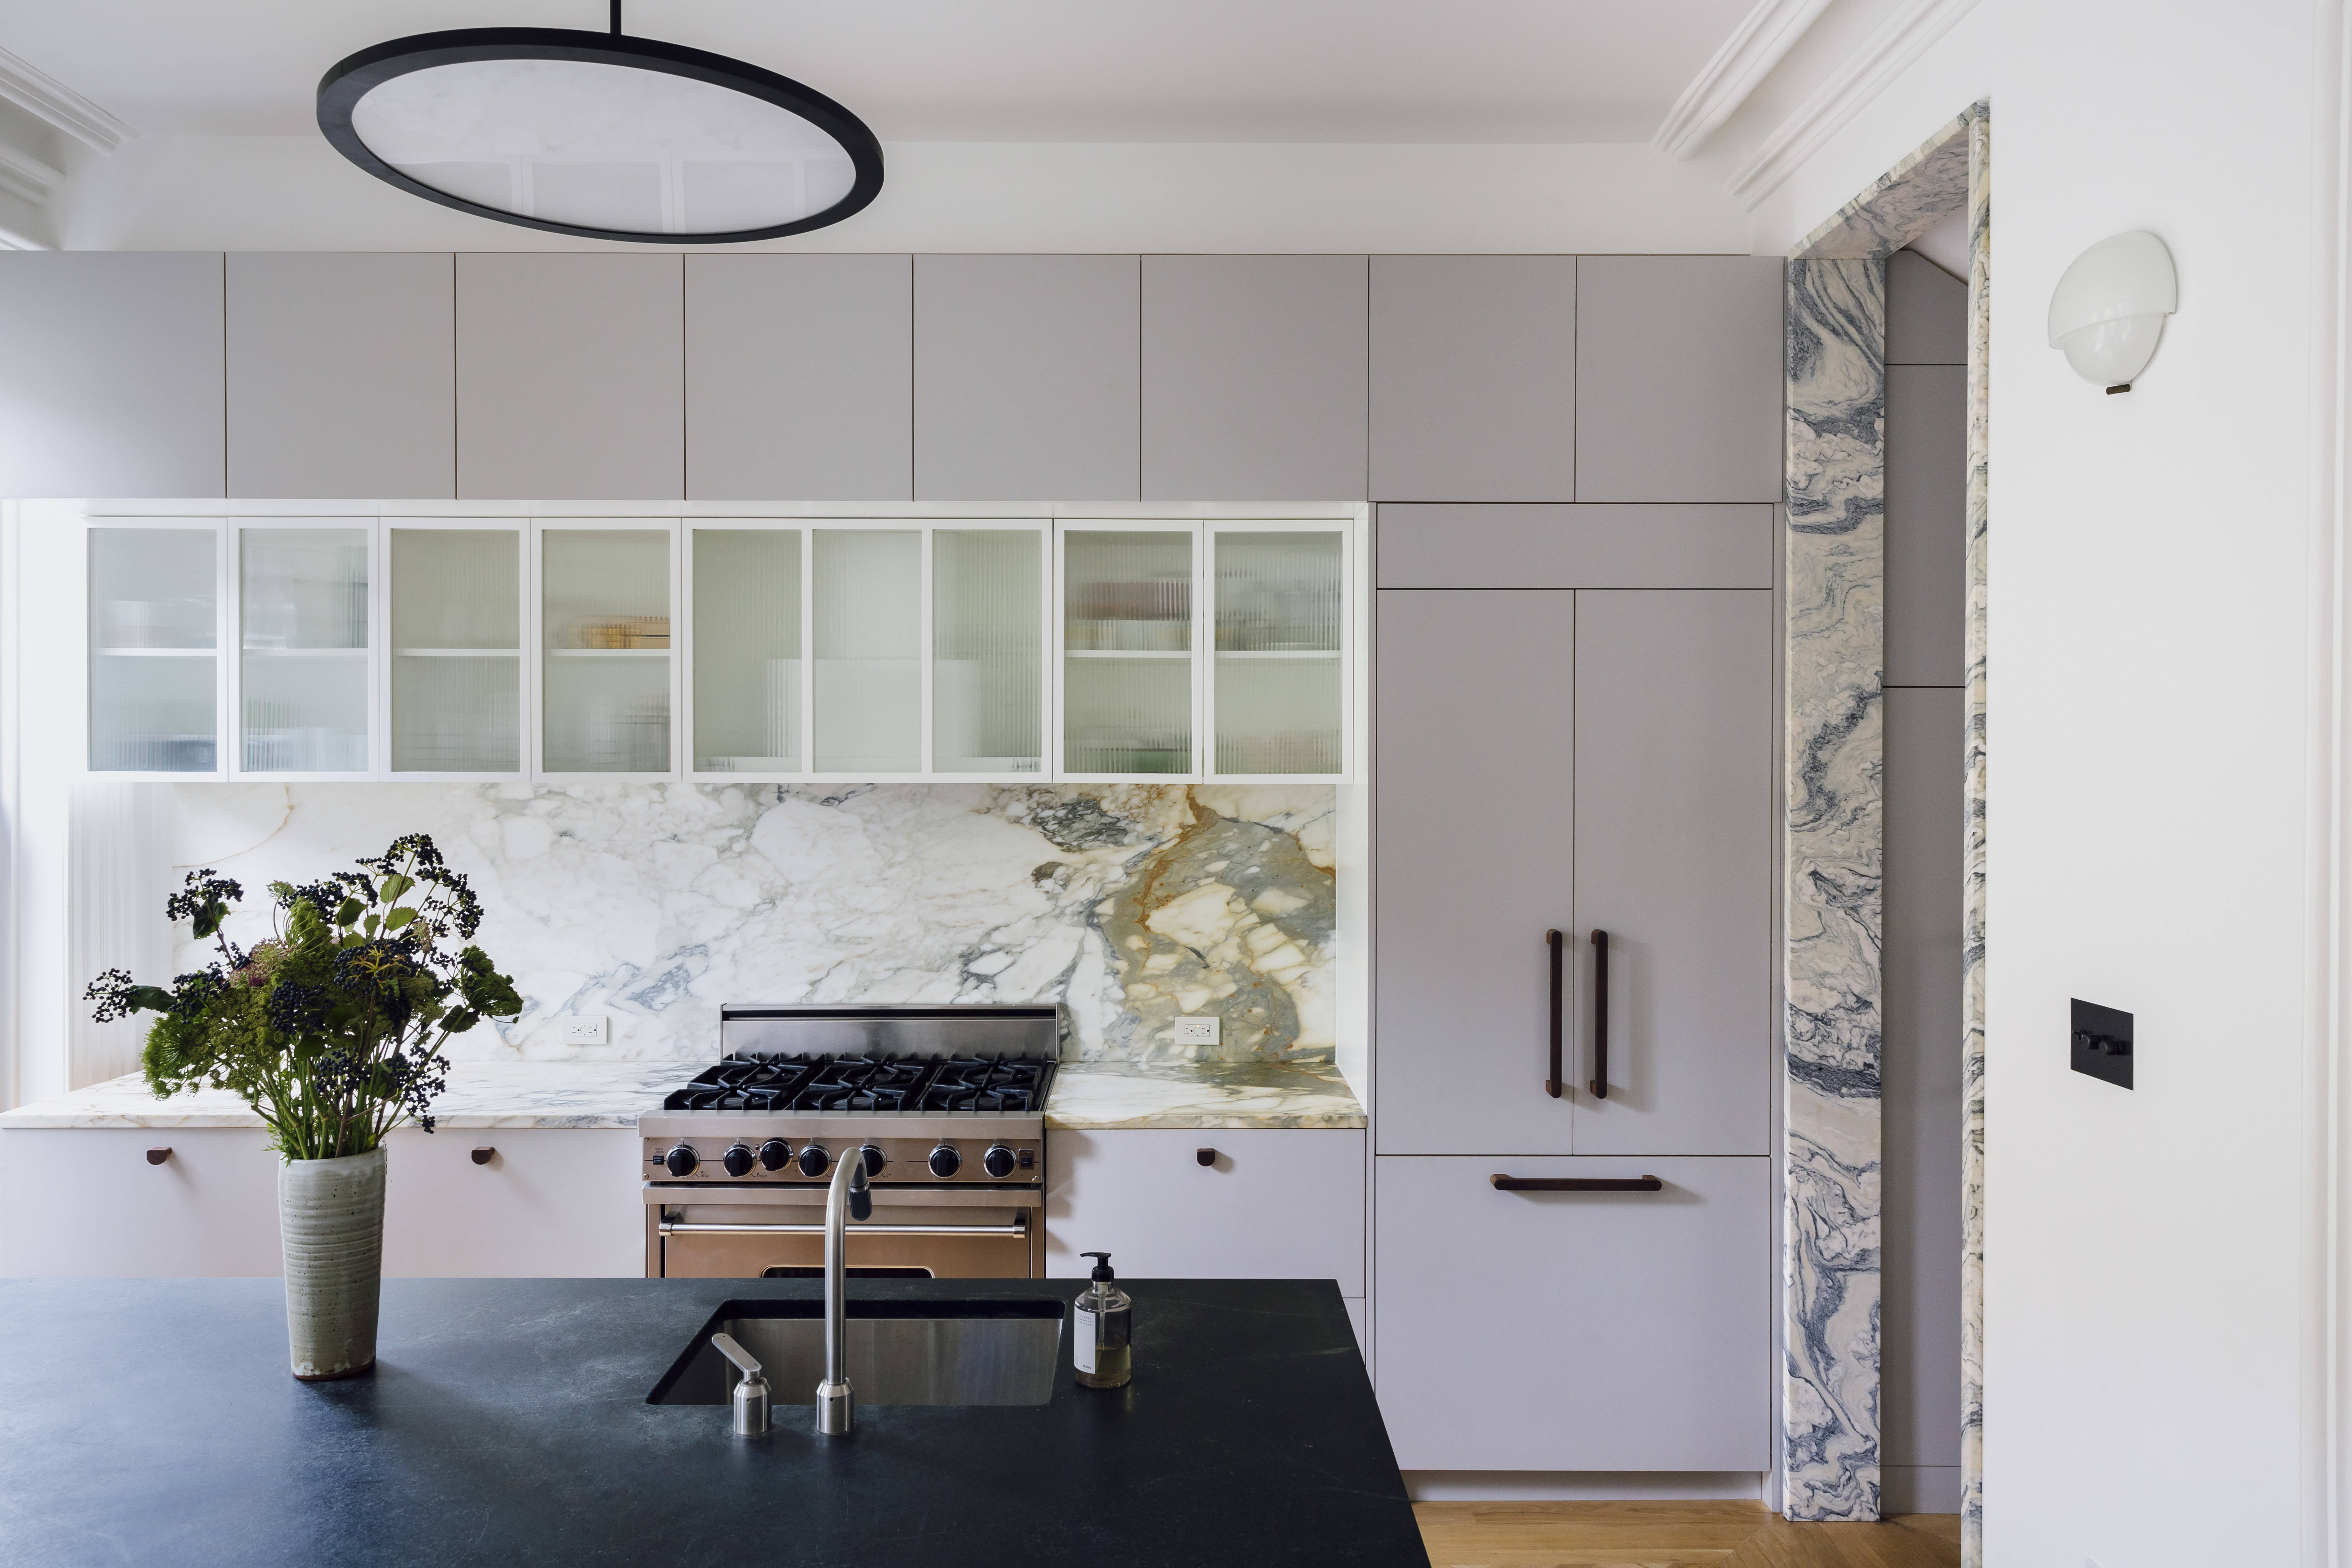 The bright, open kitchen. Note the green-toned marble on the doorjamb, an architectural detail to showcase the new entryway between kitchen and hall. &#8